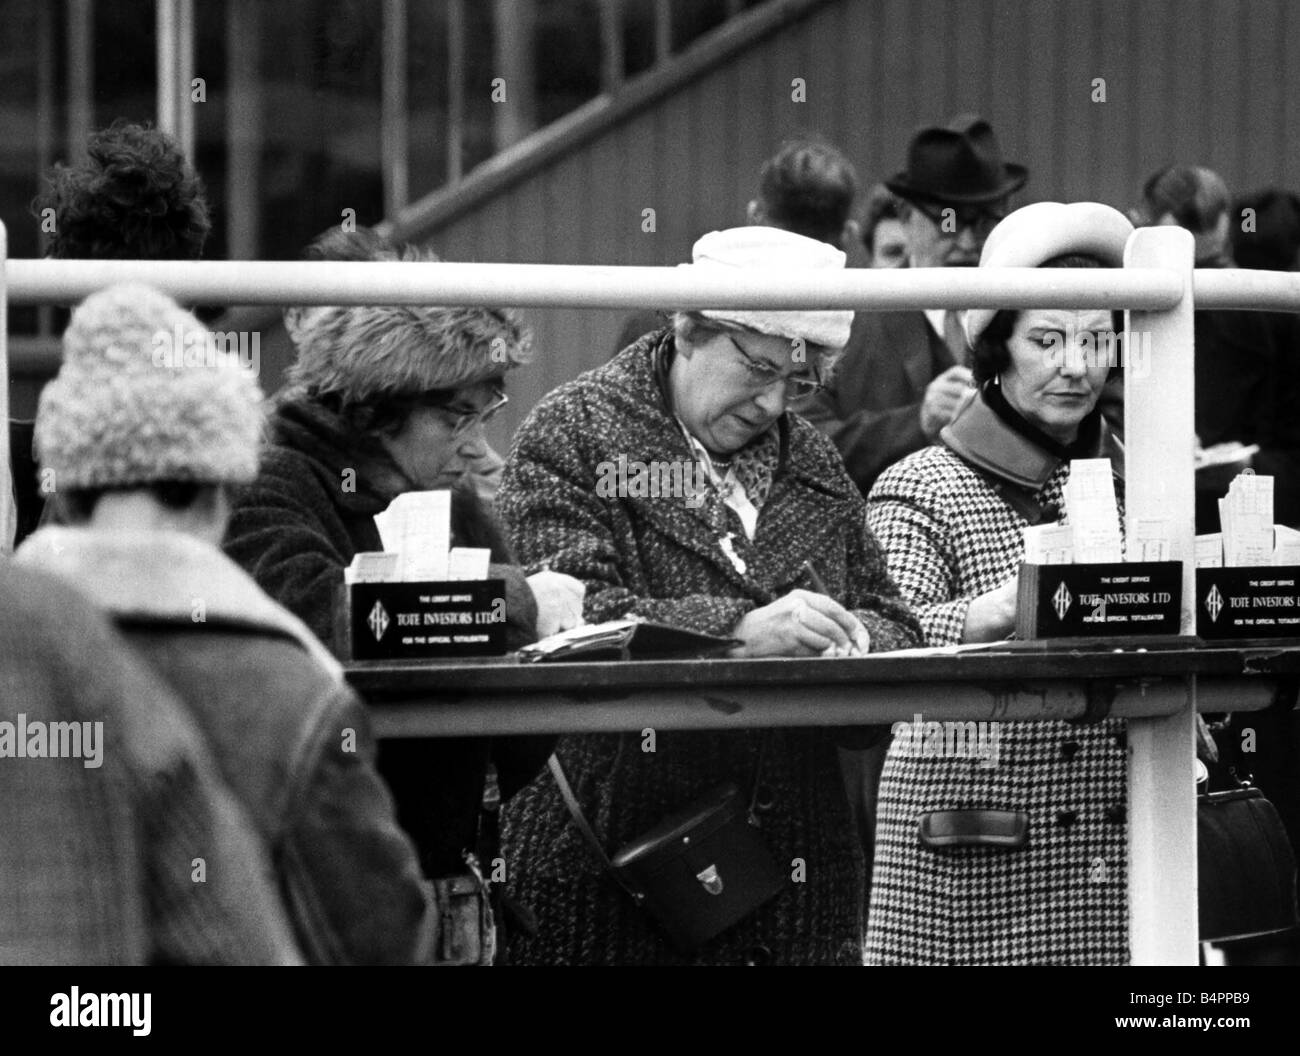 The ladies seem to find betting a serious business February 1965 - Stock Image